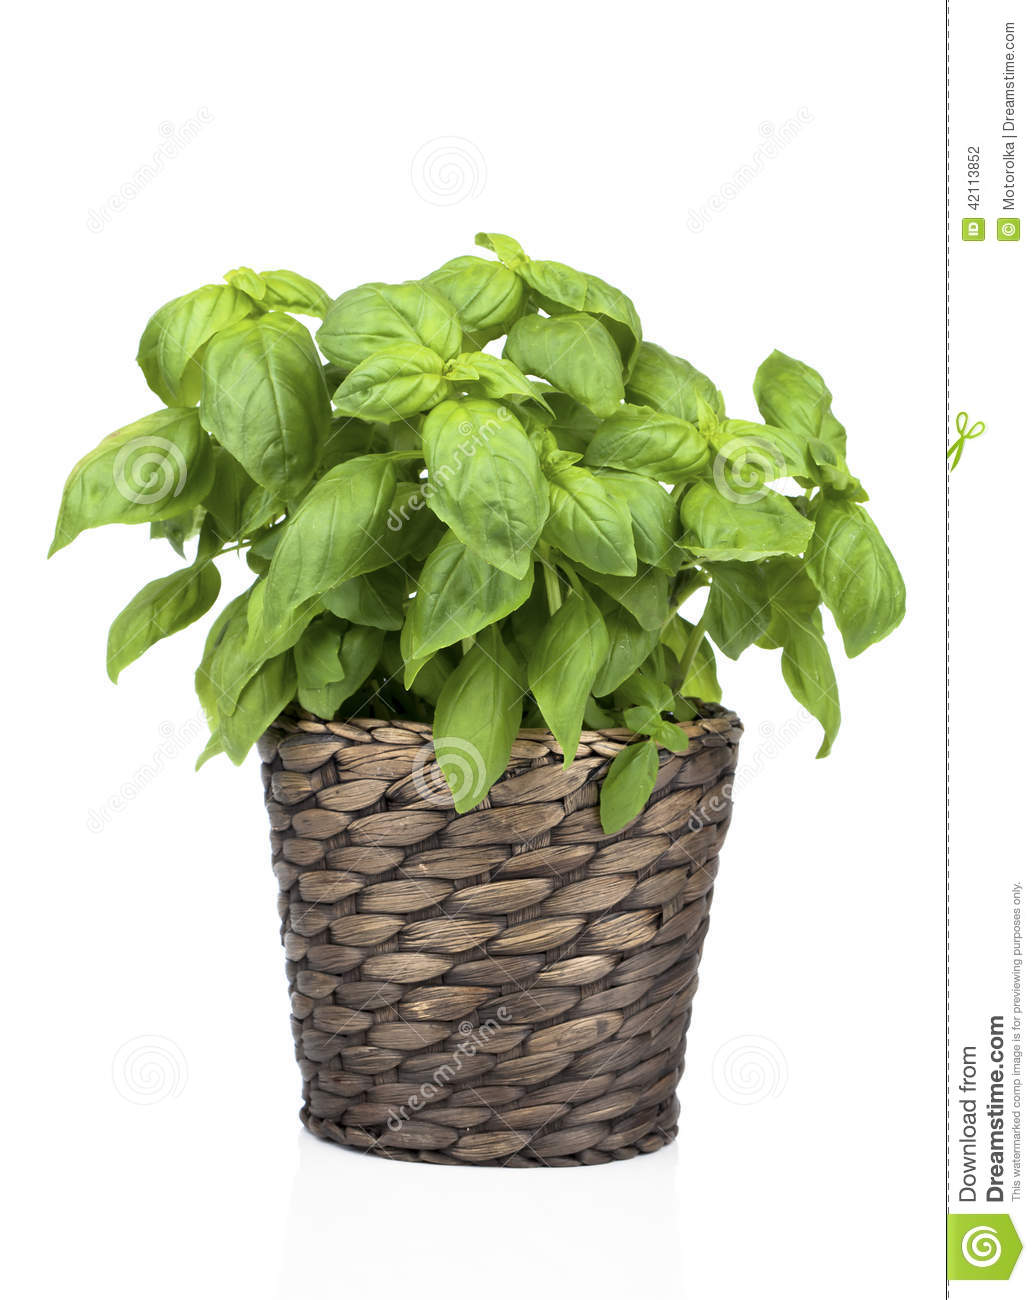 basil plant in pot stock photo image of background aromatherapy 42113852. Black Bedroom Furniture Sets. Home Design Ideas